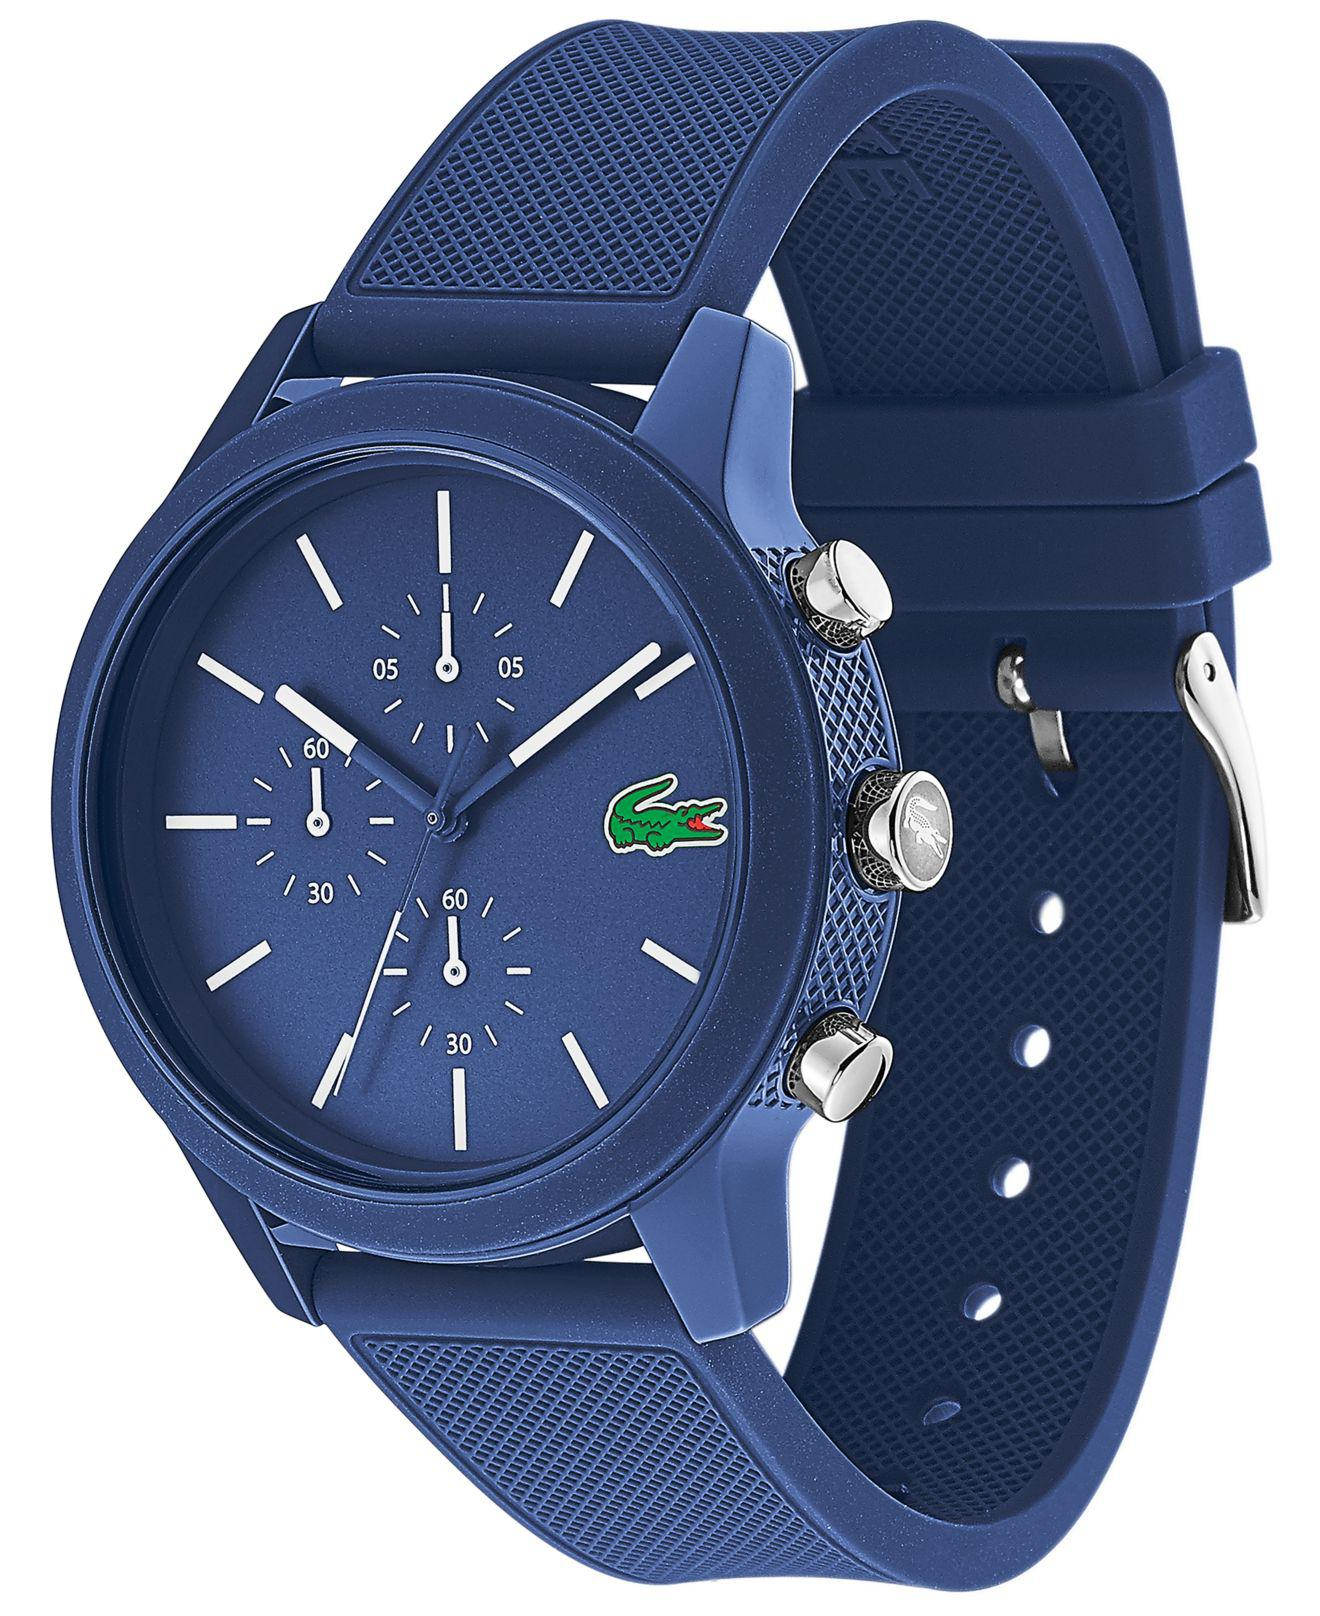 Lyst - Lacoste 12.12 Chronograph Watch With Blue Silicone Strap in Blue for Men - Save 18%